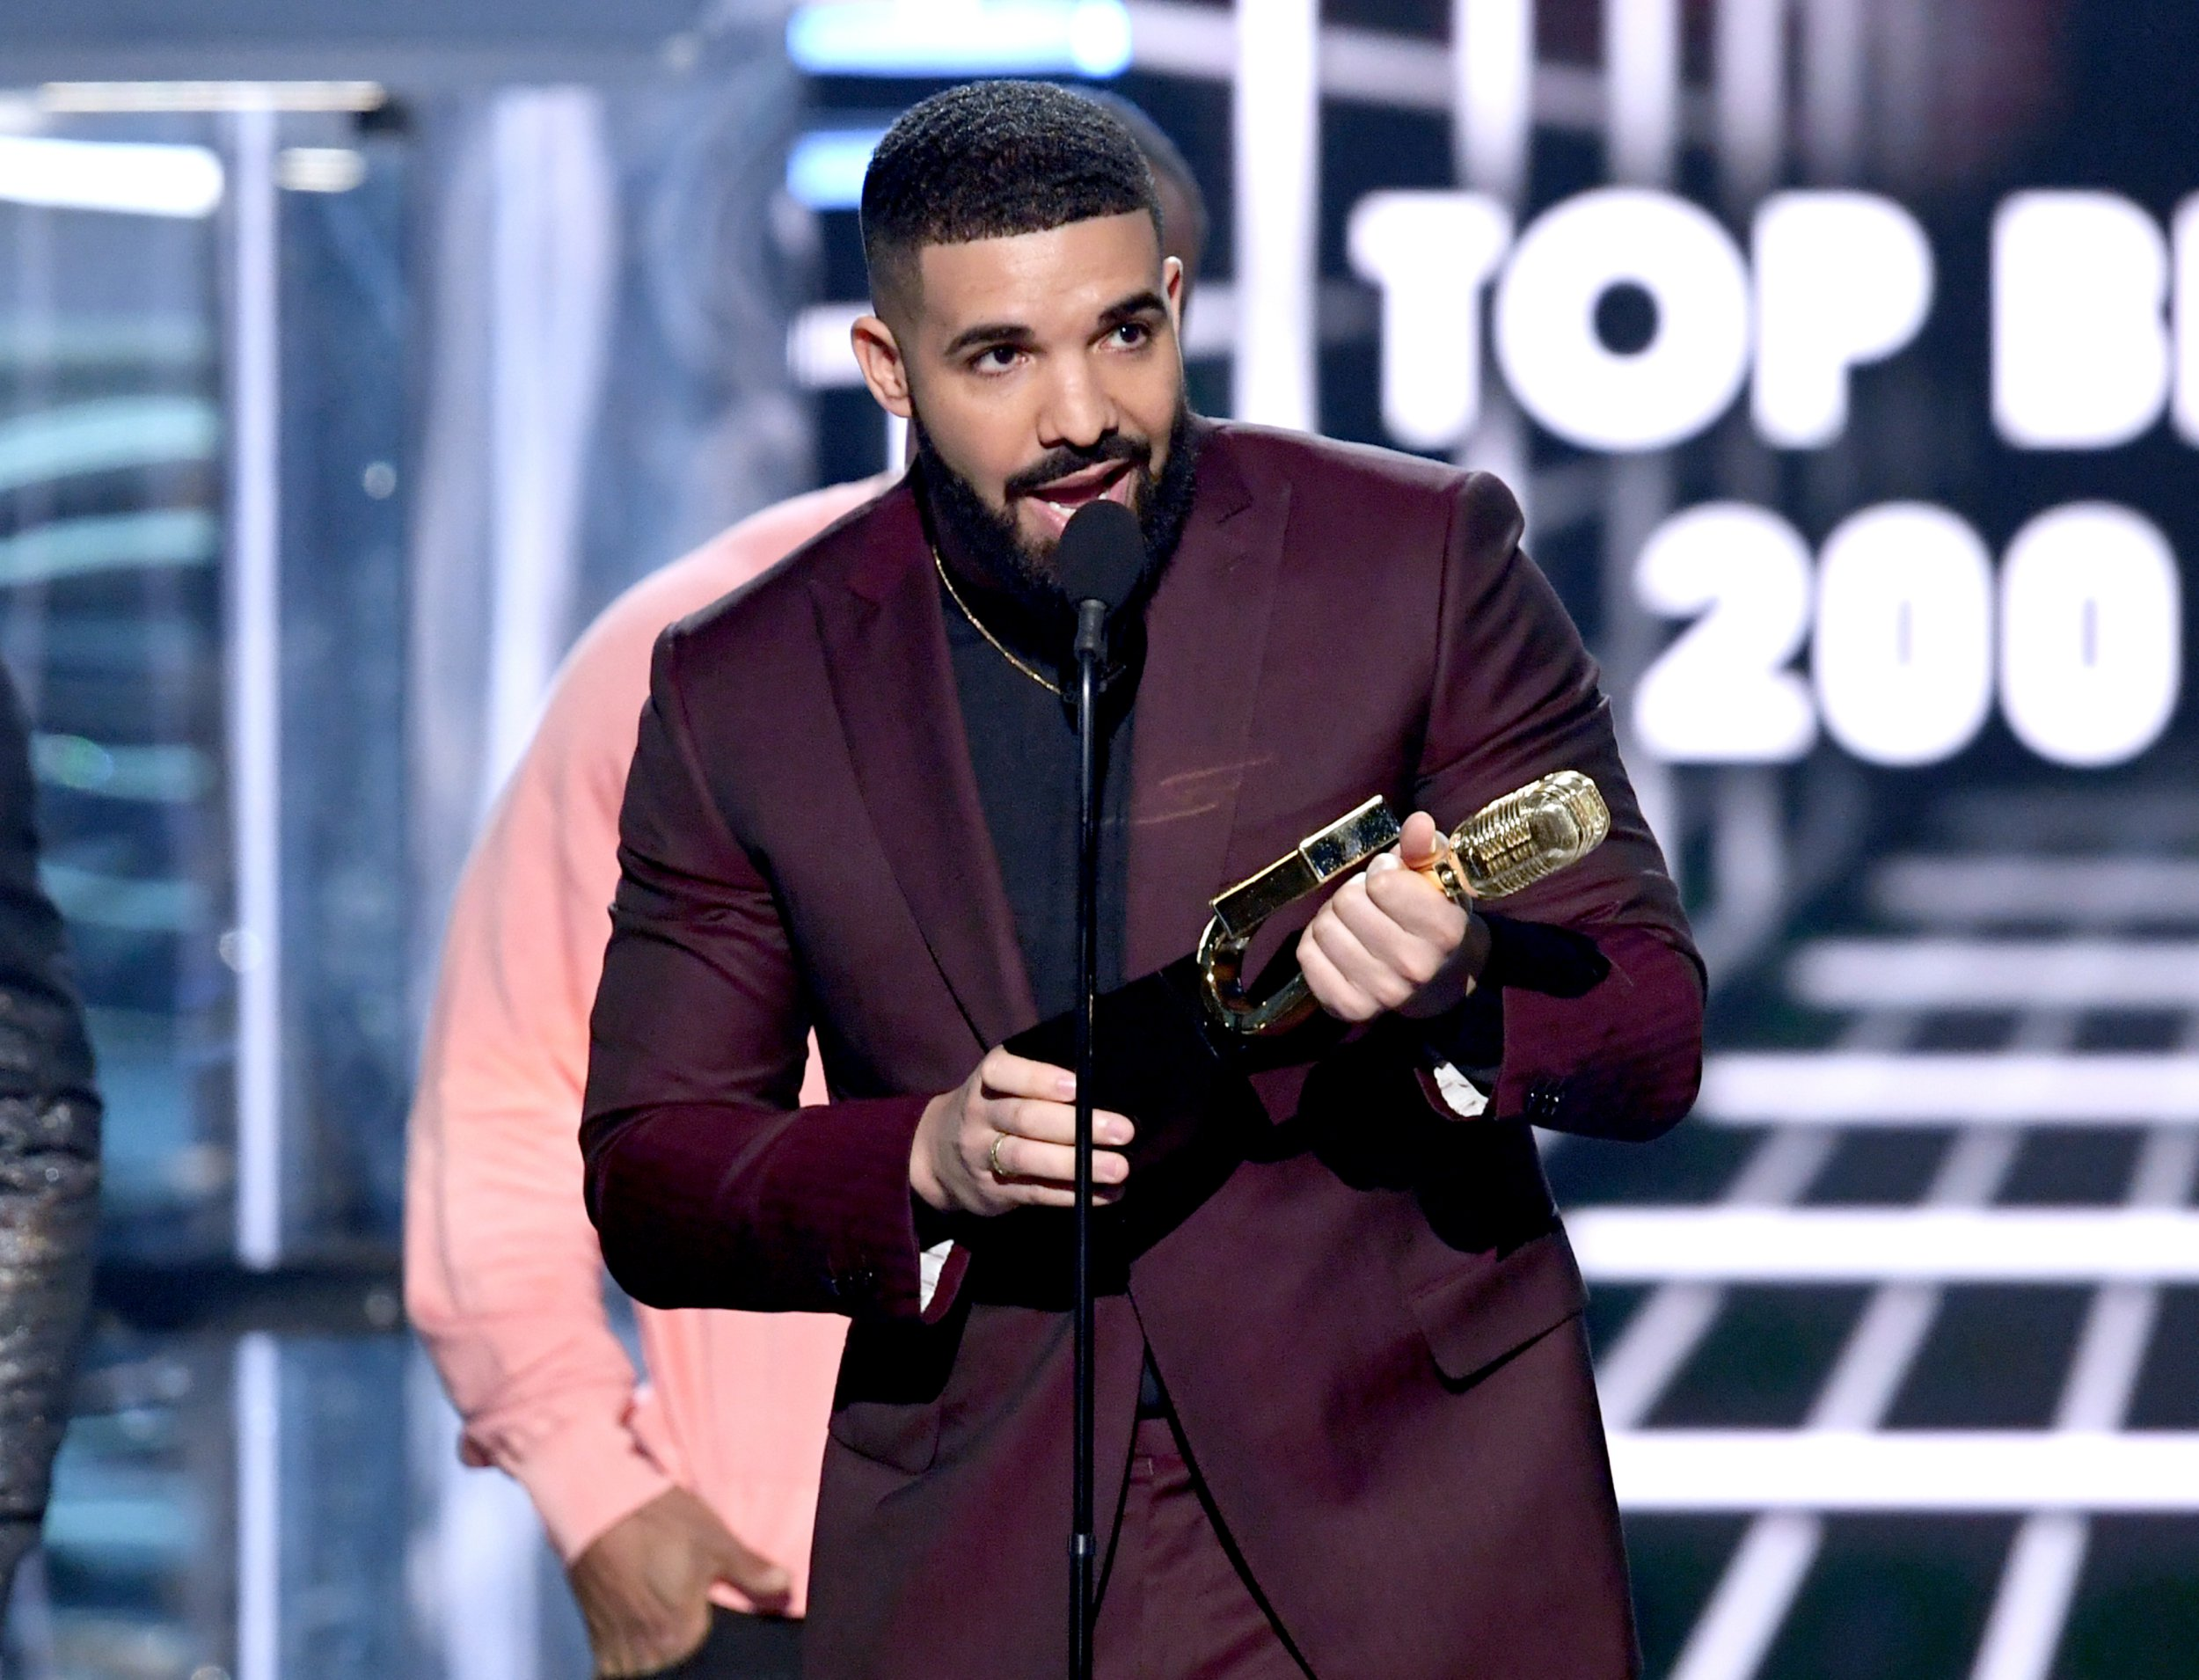 Drake dedicates Billboard Music Award to Game of Thrones' Arya Stark because she deserves it